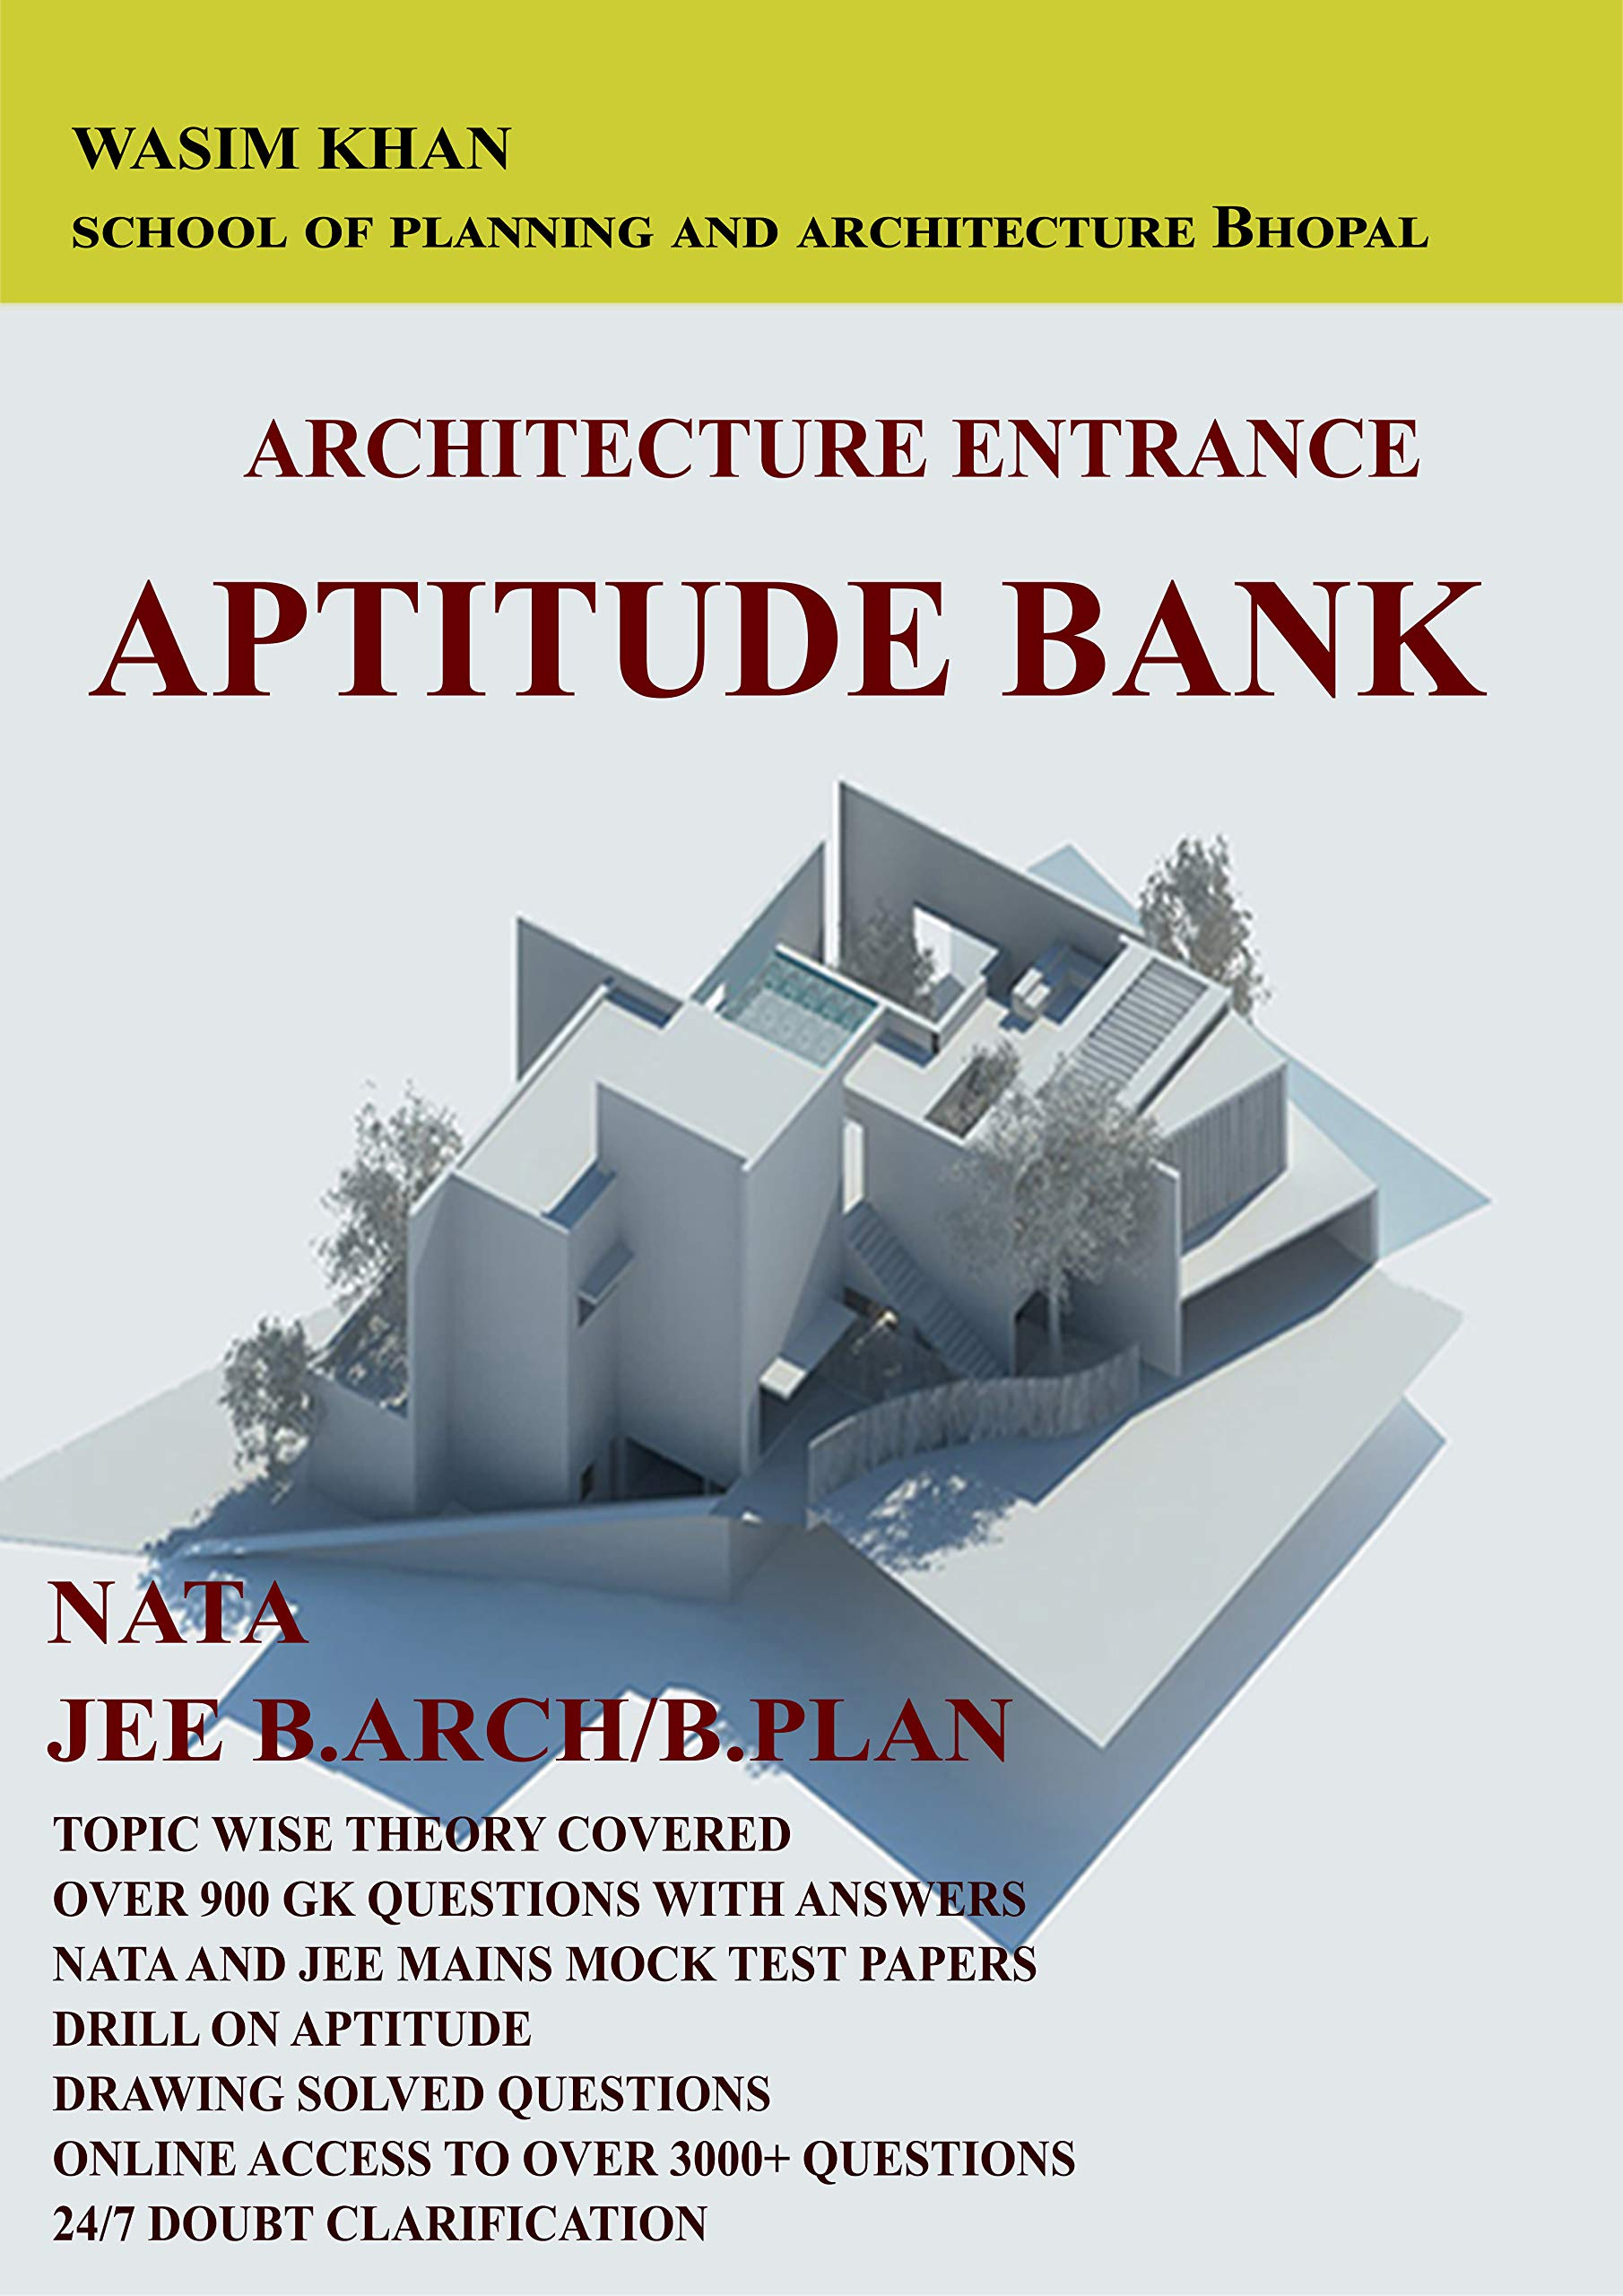 NATA,JEE B.ARCH/B.PLAN ENTRANCE GUIDE-2021/2022(COMBO) With Online Mock Test Series+2 Additional Ebooks+Study Materials through Mobile App+500 Solved Sketches)